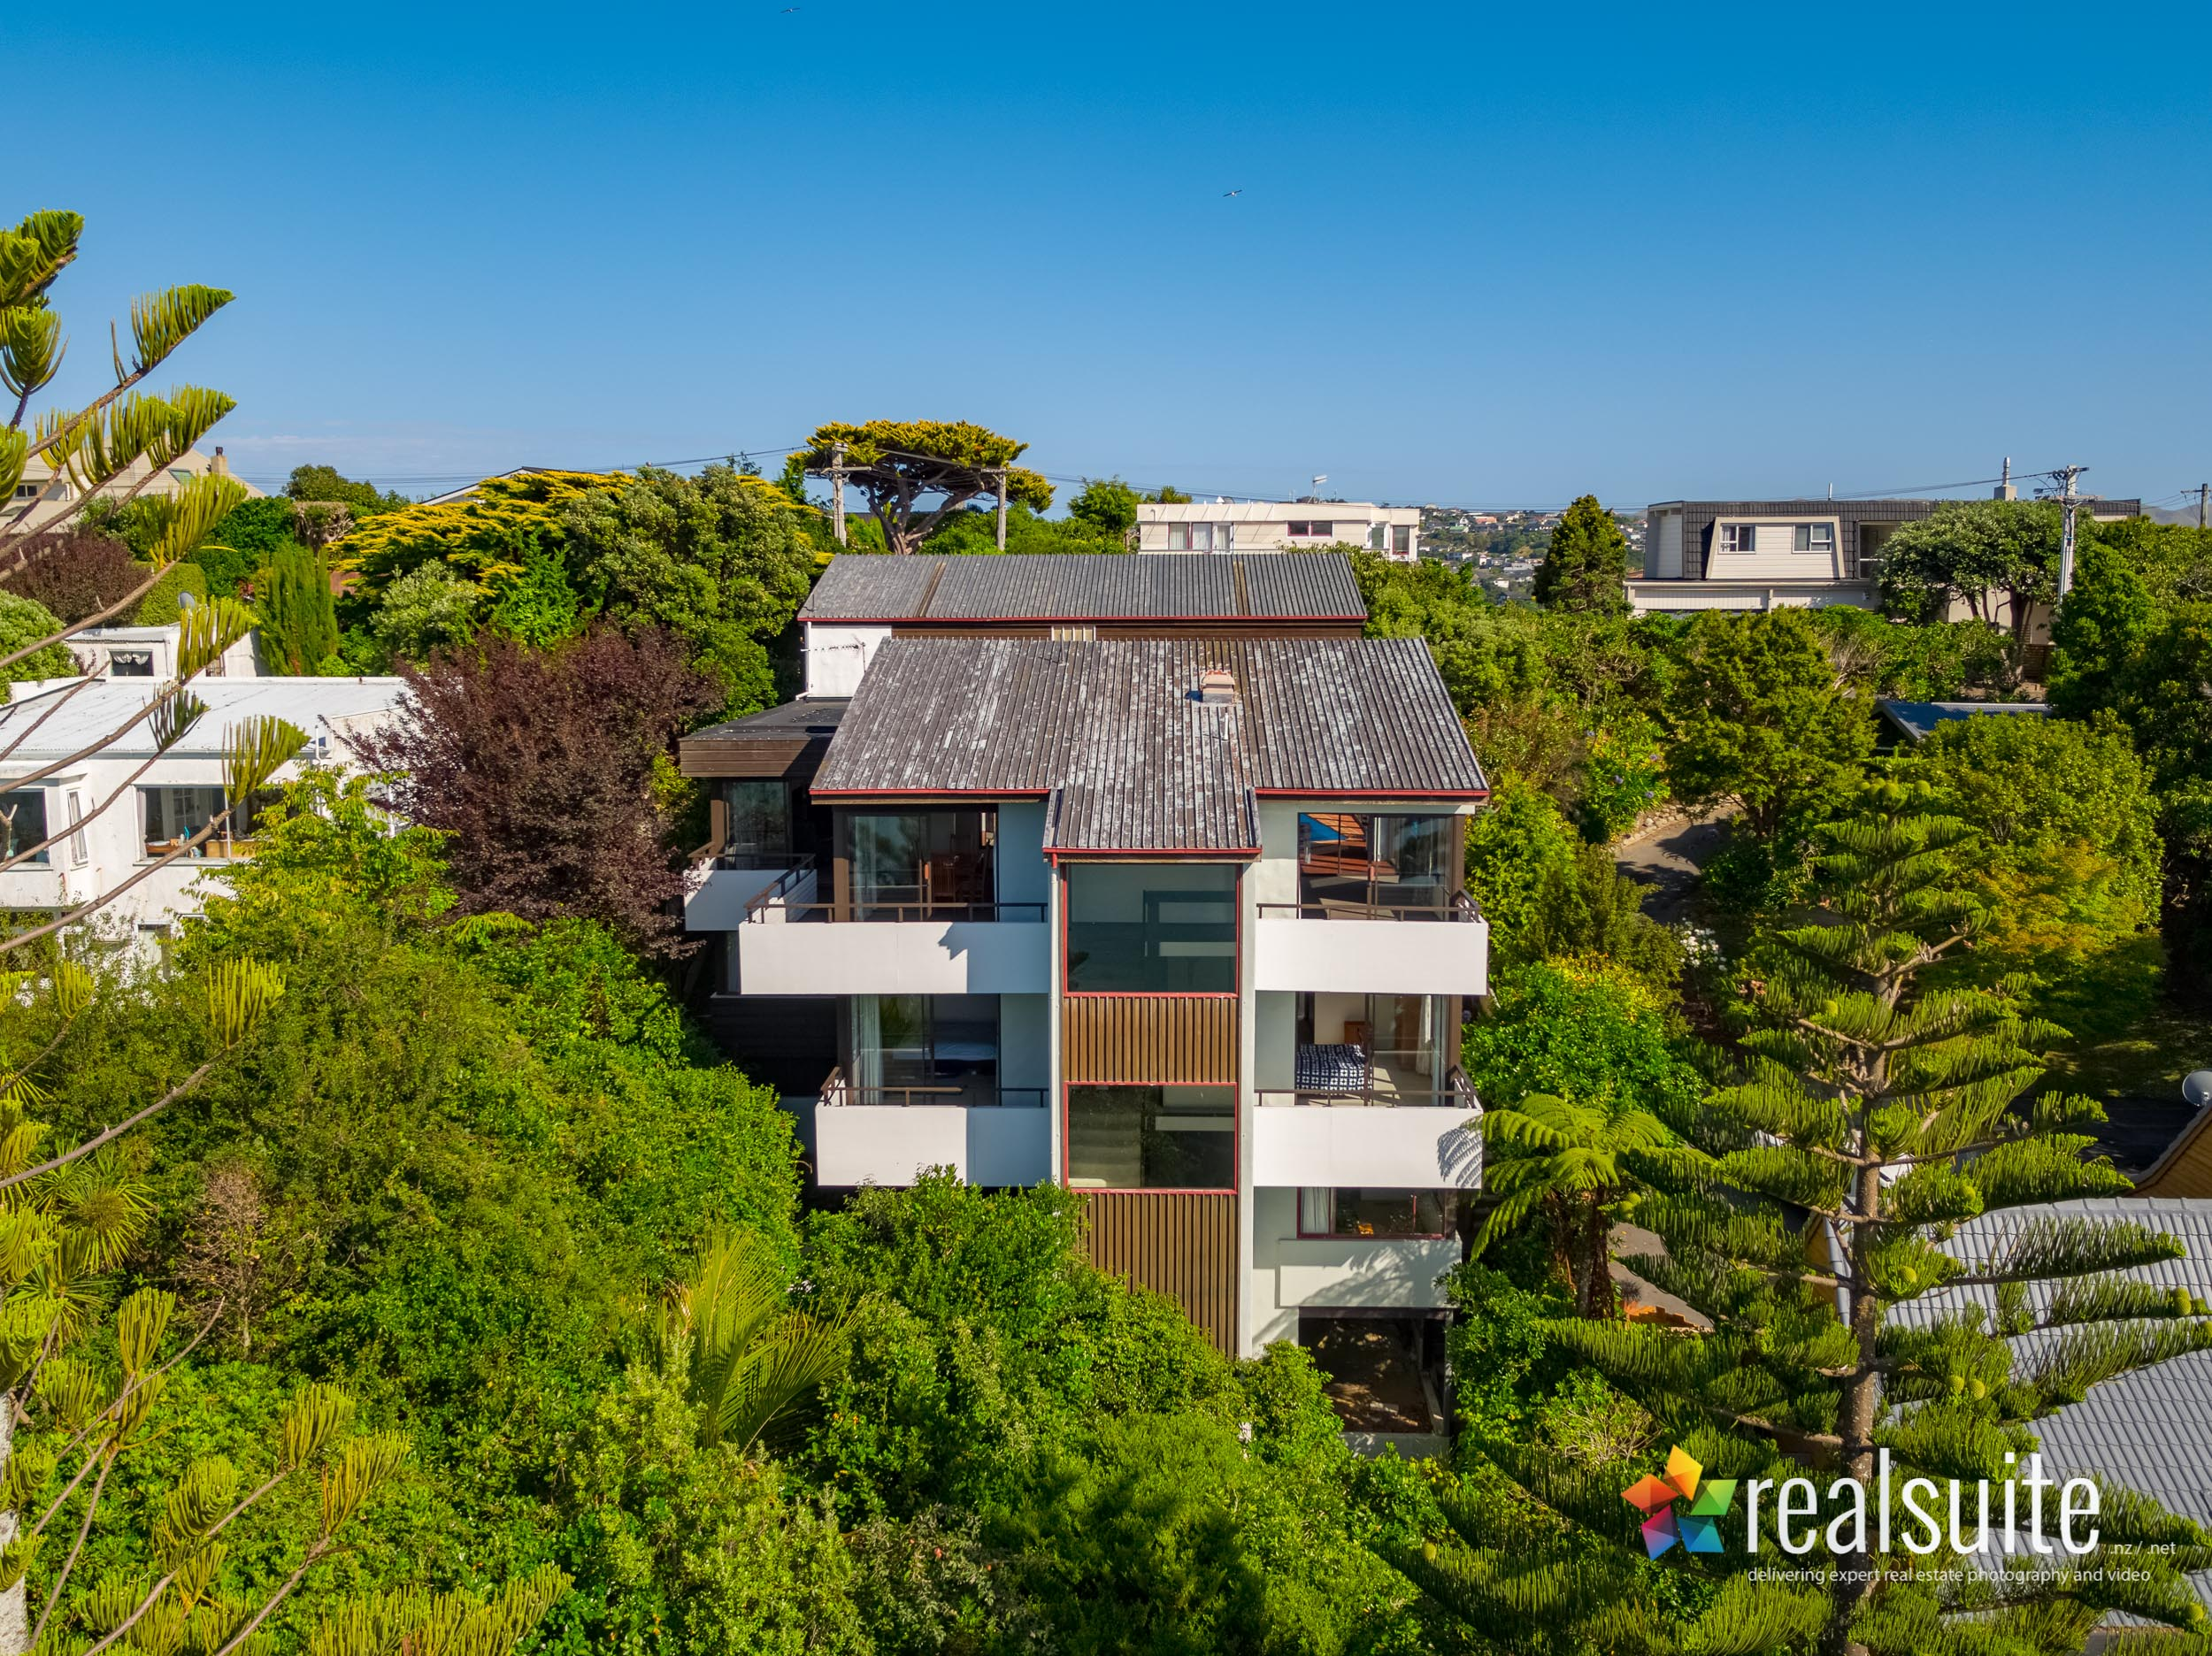 66 Seaview Road, Paremata, Aerial 0005